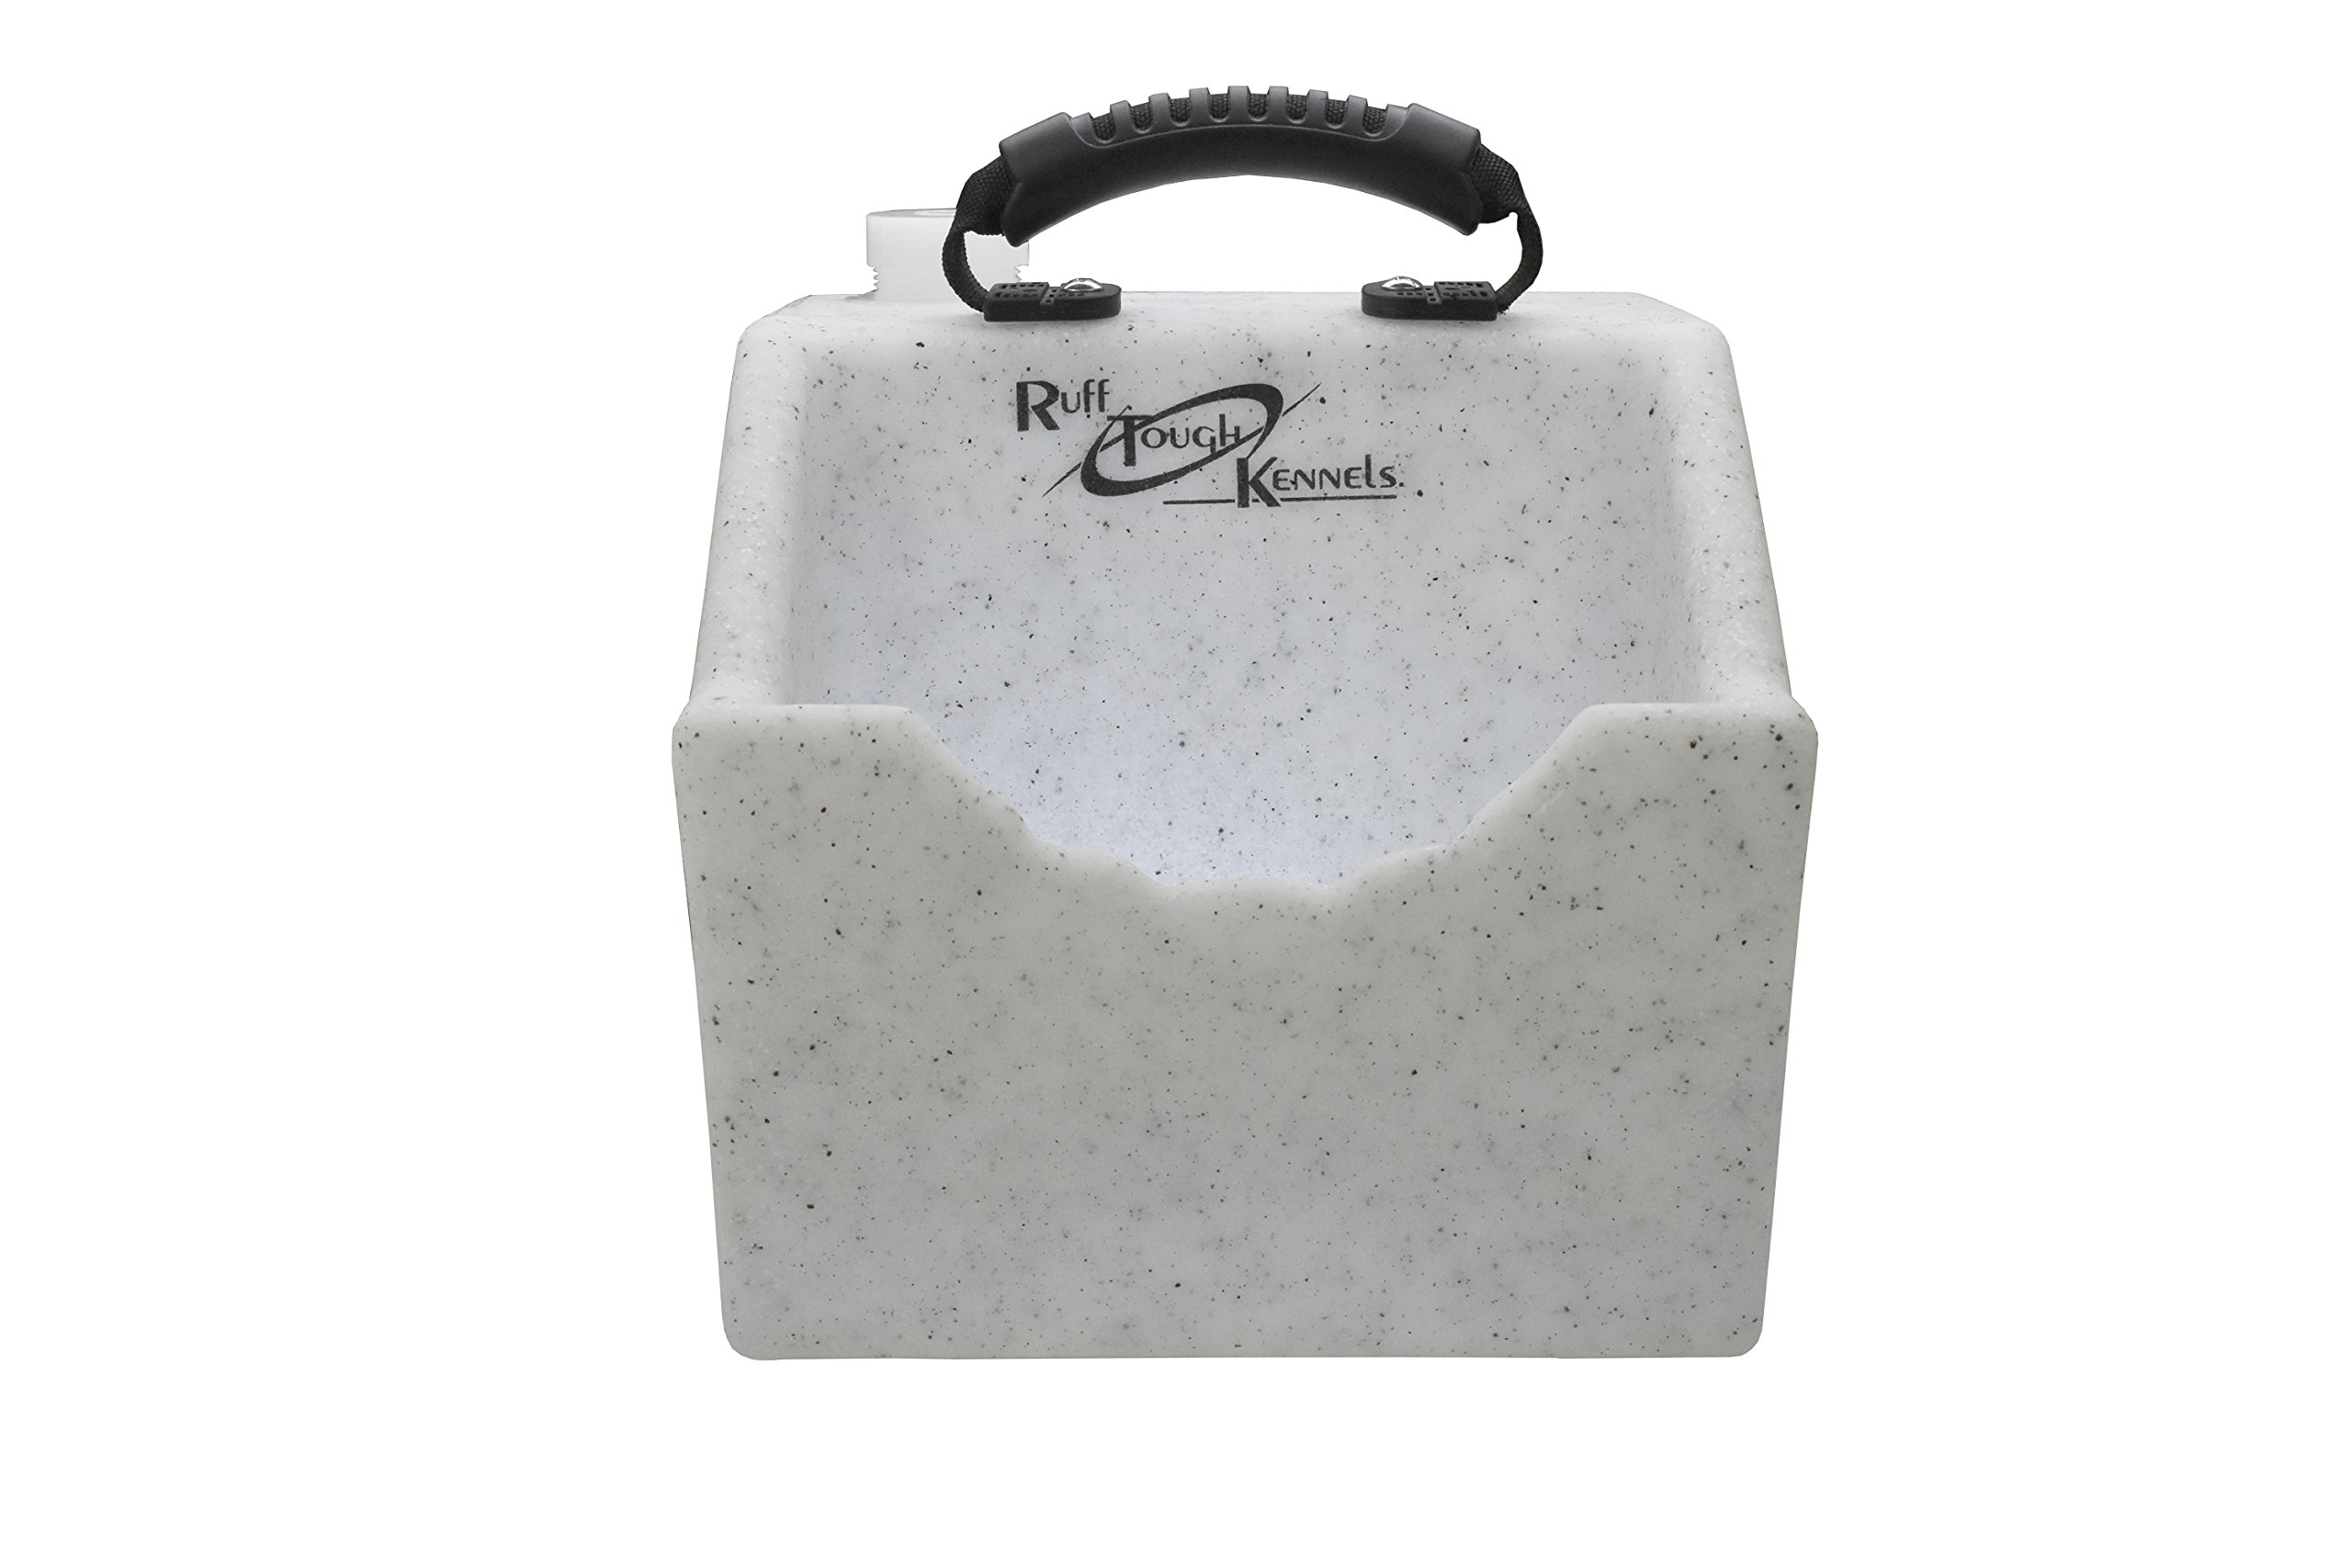 Ruff Tough Kennels Dog Water Dish, Bowl, Easy to use Portable Water Station, Whitestone color, Holds 1 Gallon of water, 10.5'' long, 10''wide, 11.5''Tall